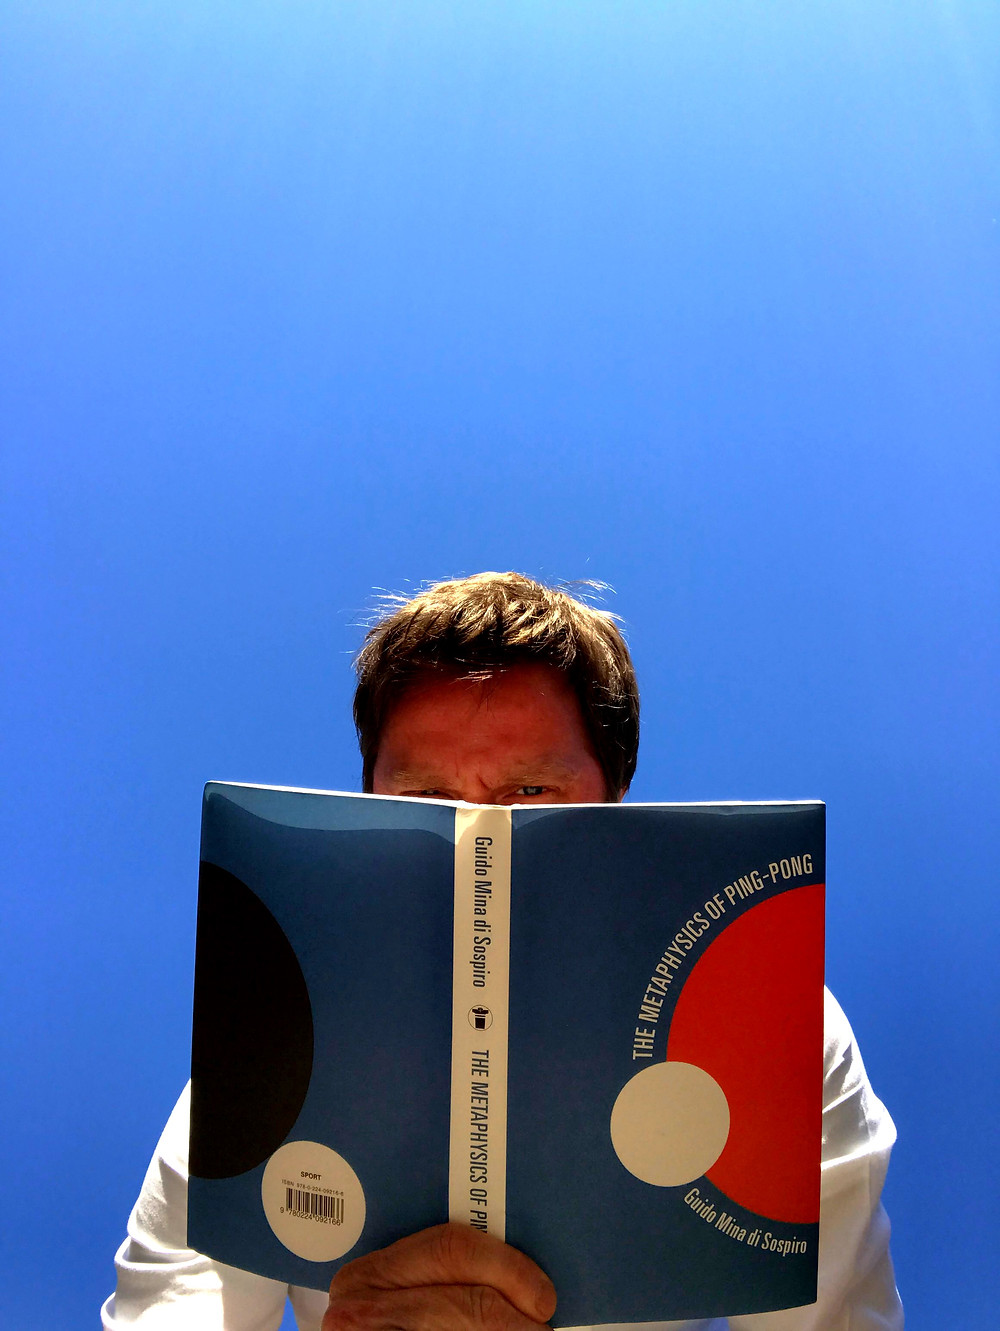 Cover of US Edition of Metaphysics of Pingpong, by Guido Mina di Sospiro